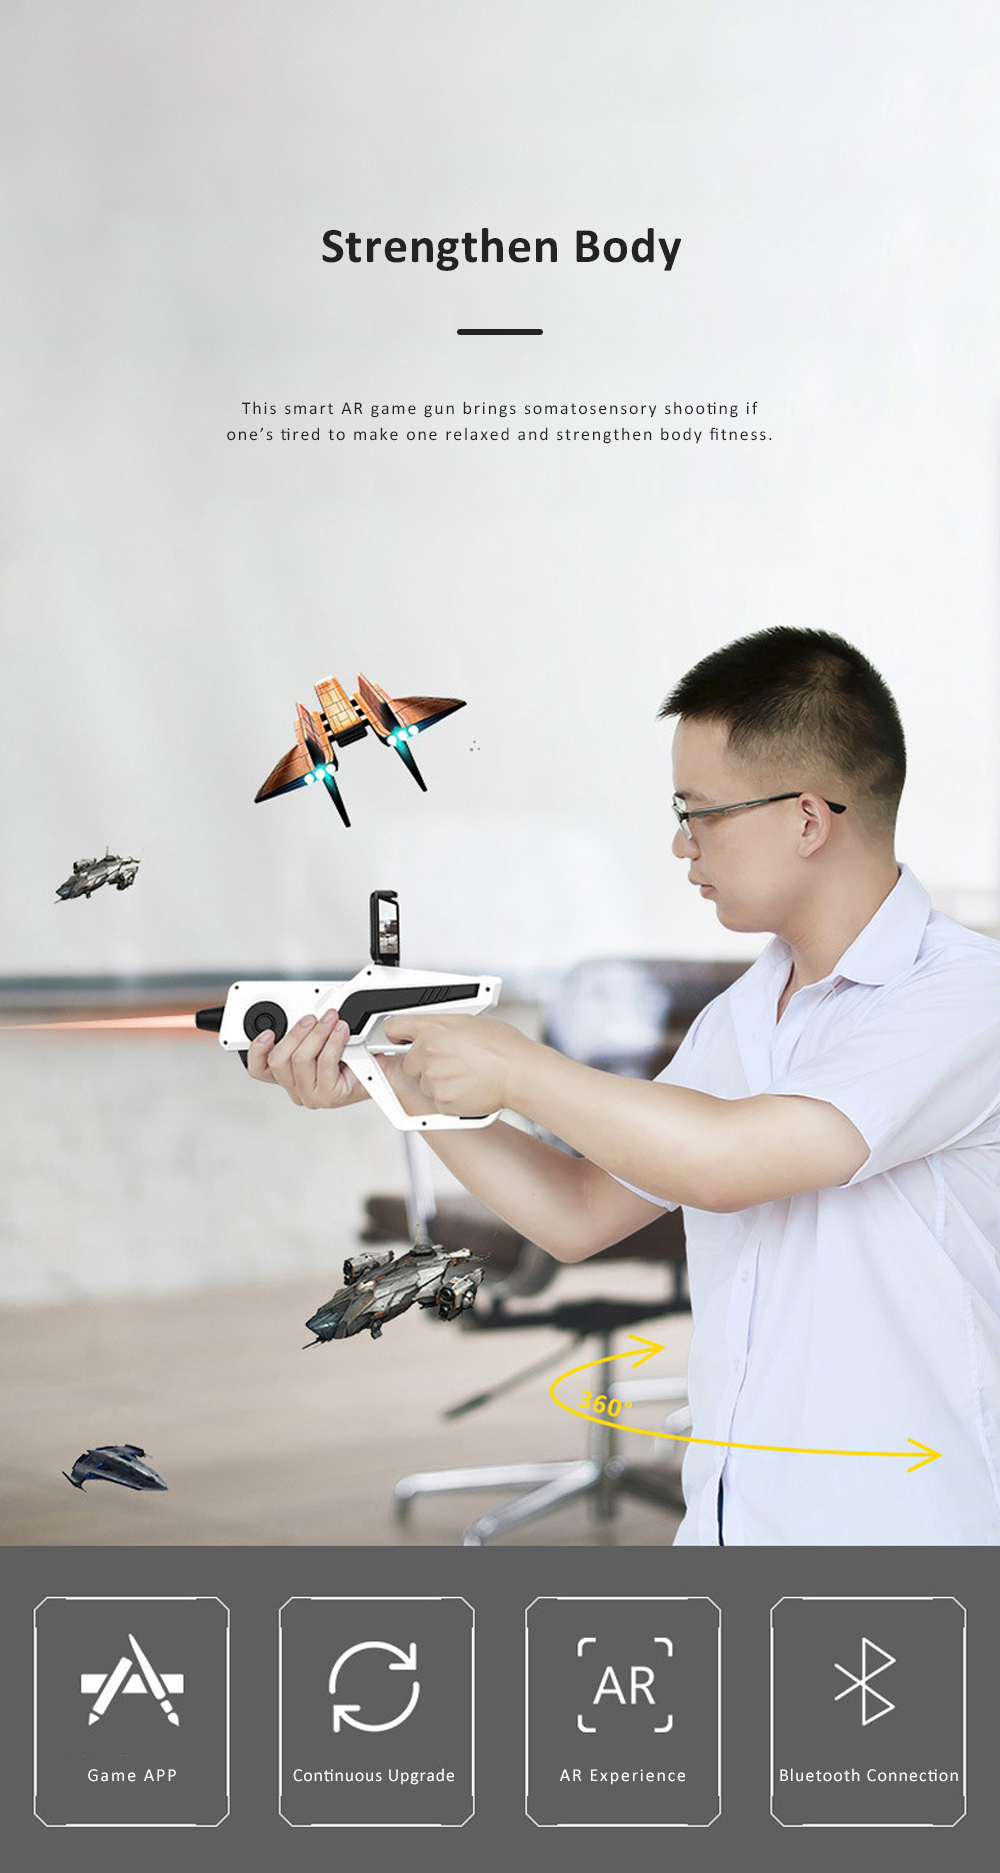 Smart AR Game Gun for Relaxation Shinecon Somatosensory AR Gun Bluetooth Connection AR Game Light Gun Compatible for 4.7-6.0 Smart Phone 4